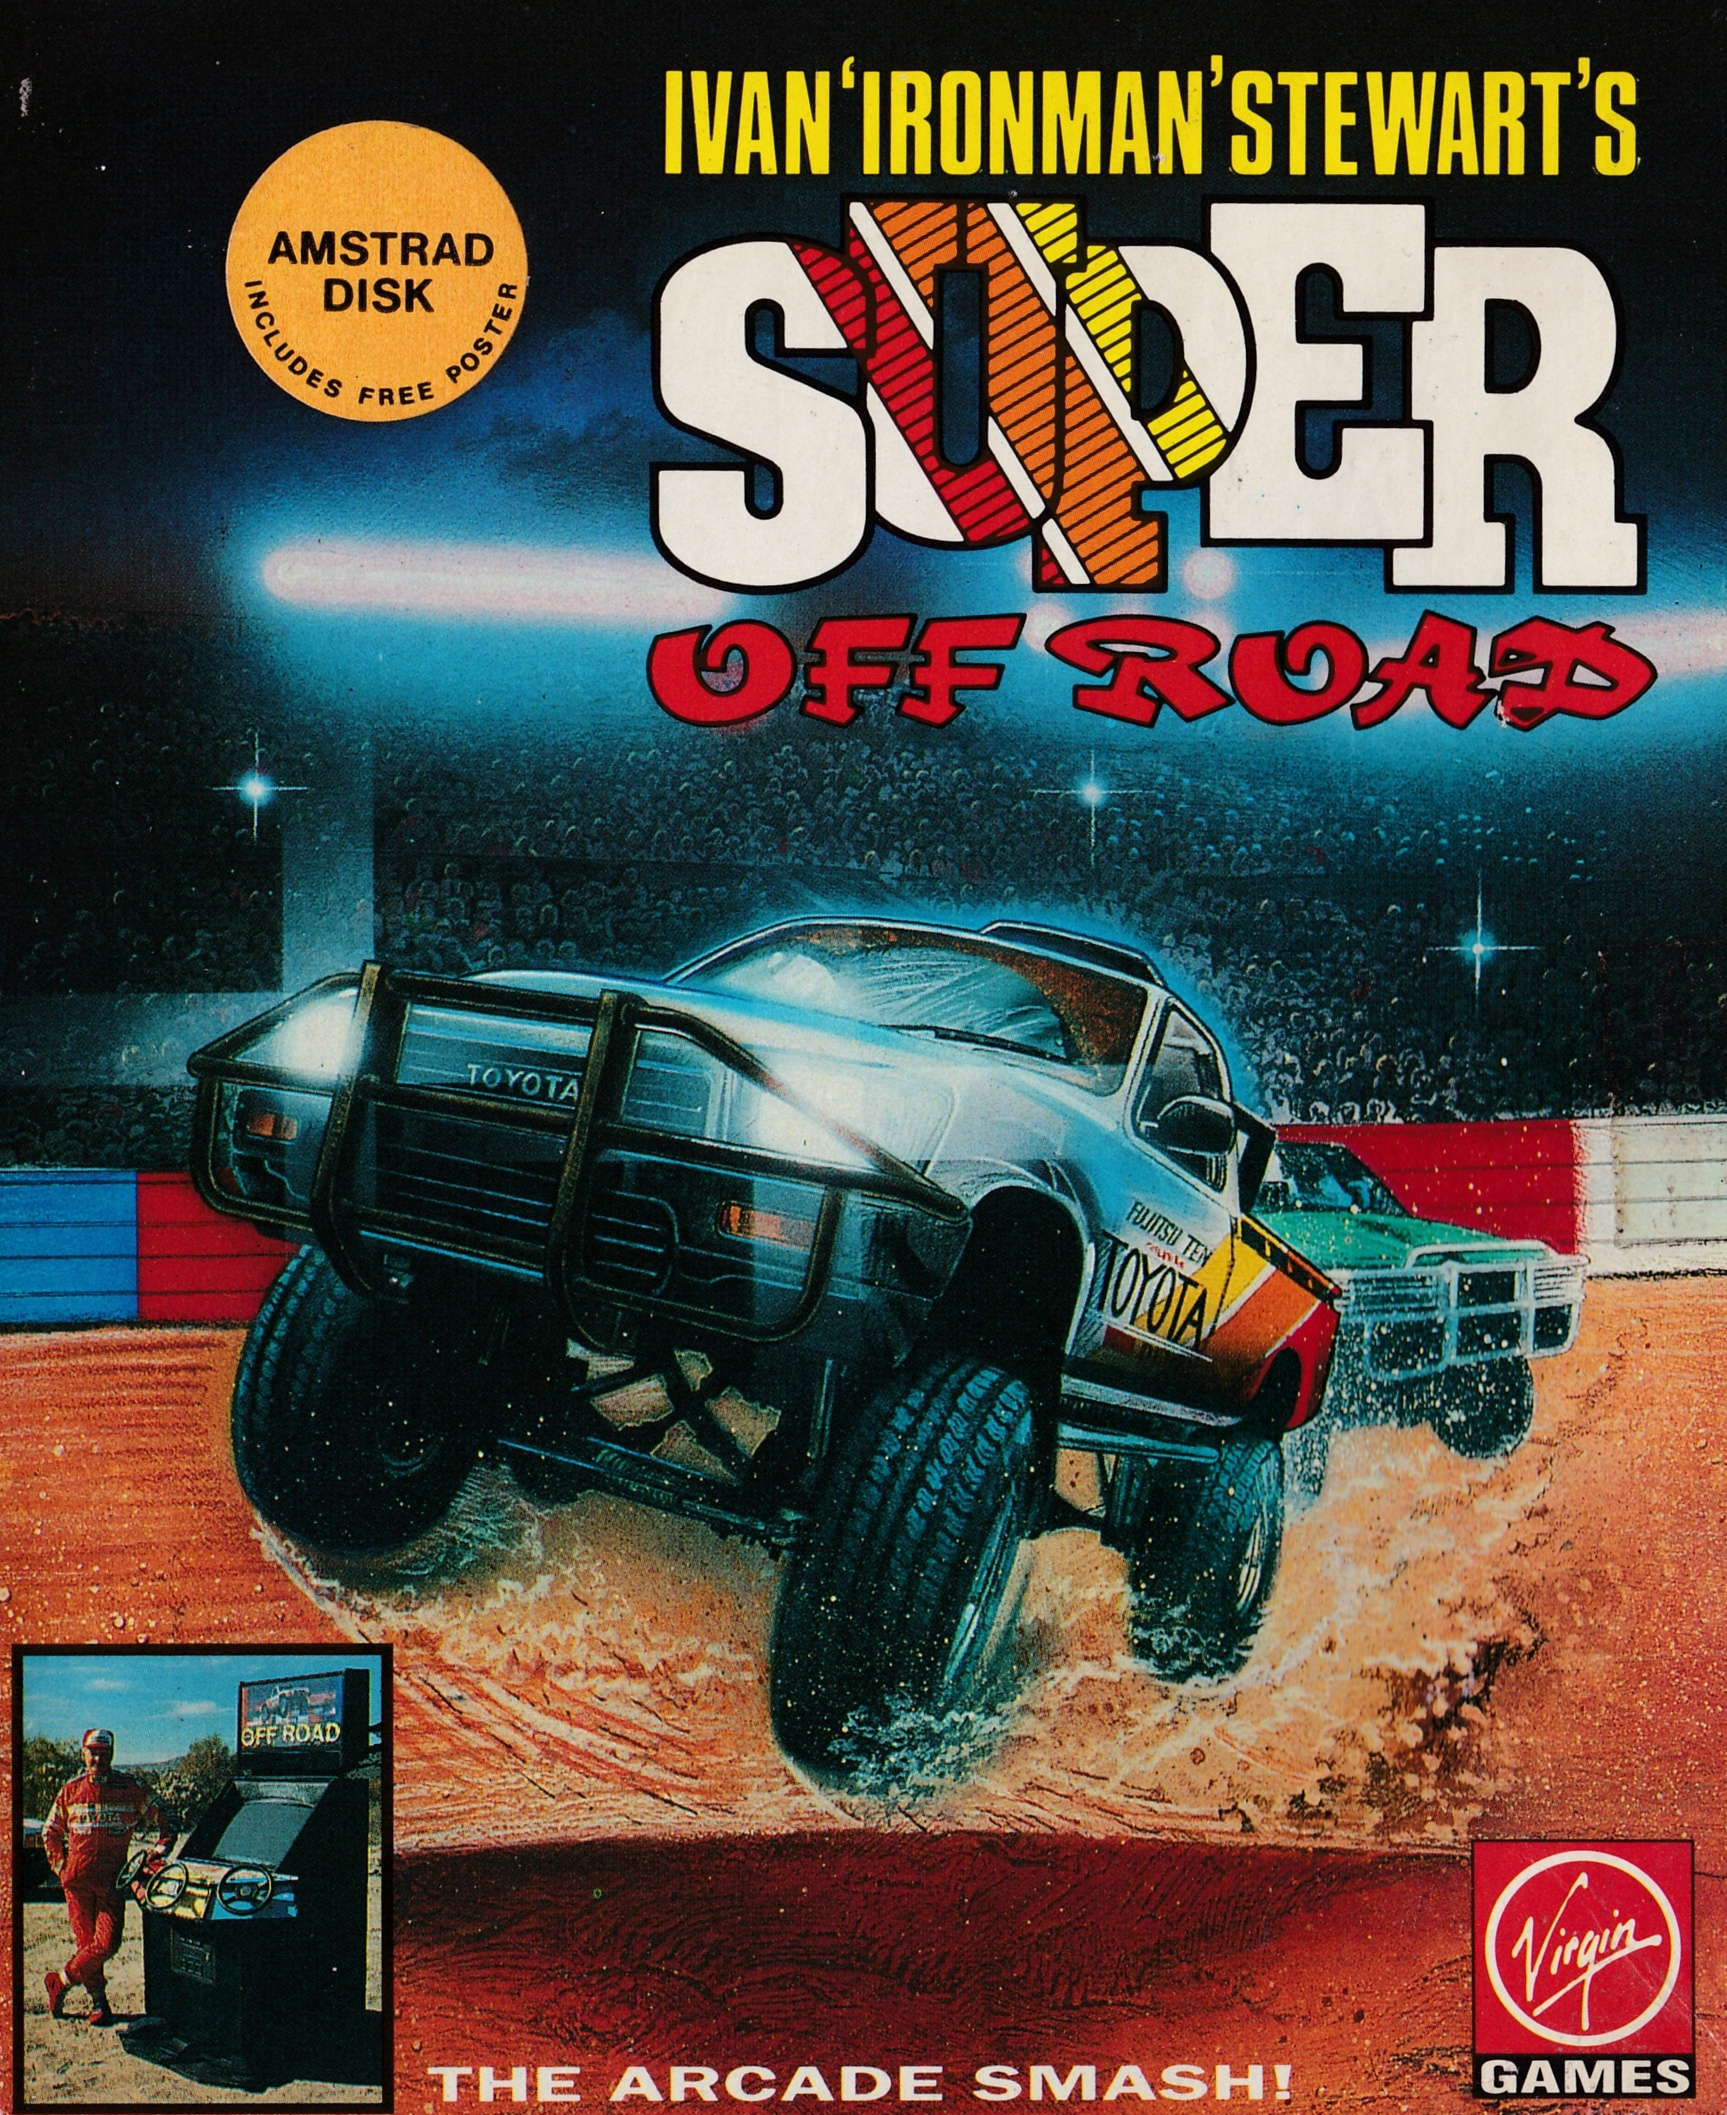 screenshot of the Amstrad CPC game Ivan 'Ironman' Stewart's Super Off Road by GameBase CPC